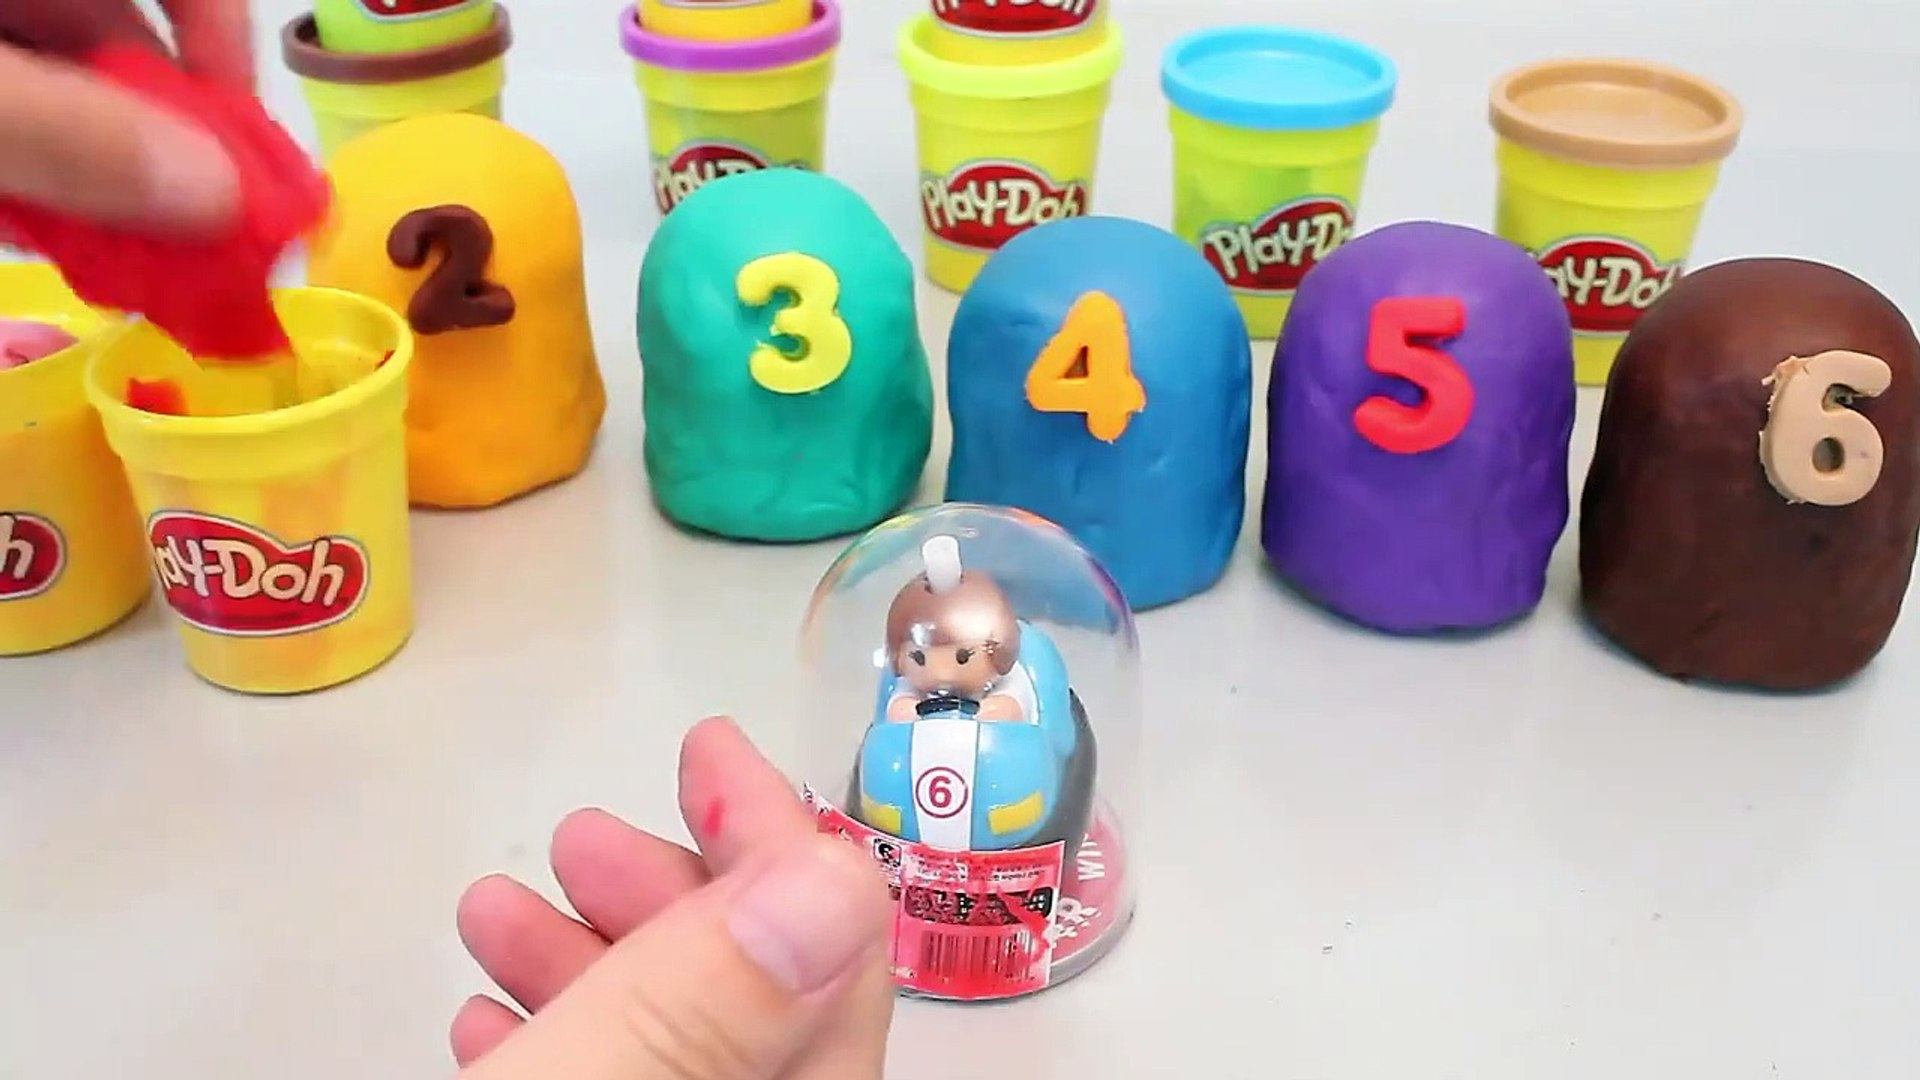 Edy Play Toys - Kids Play Colors Play Doh Surprise Eggs Number Playdough Toy For All Kids